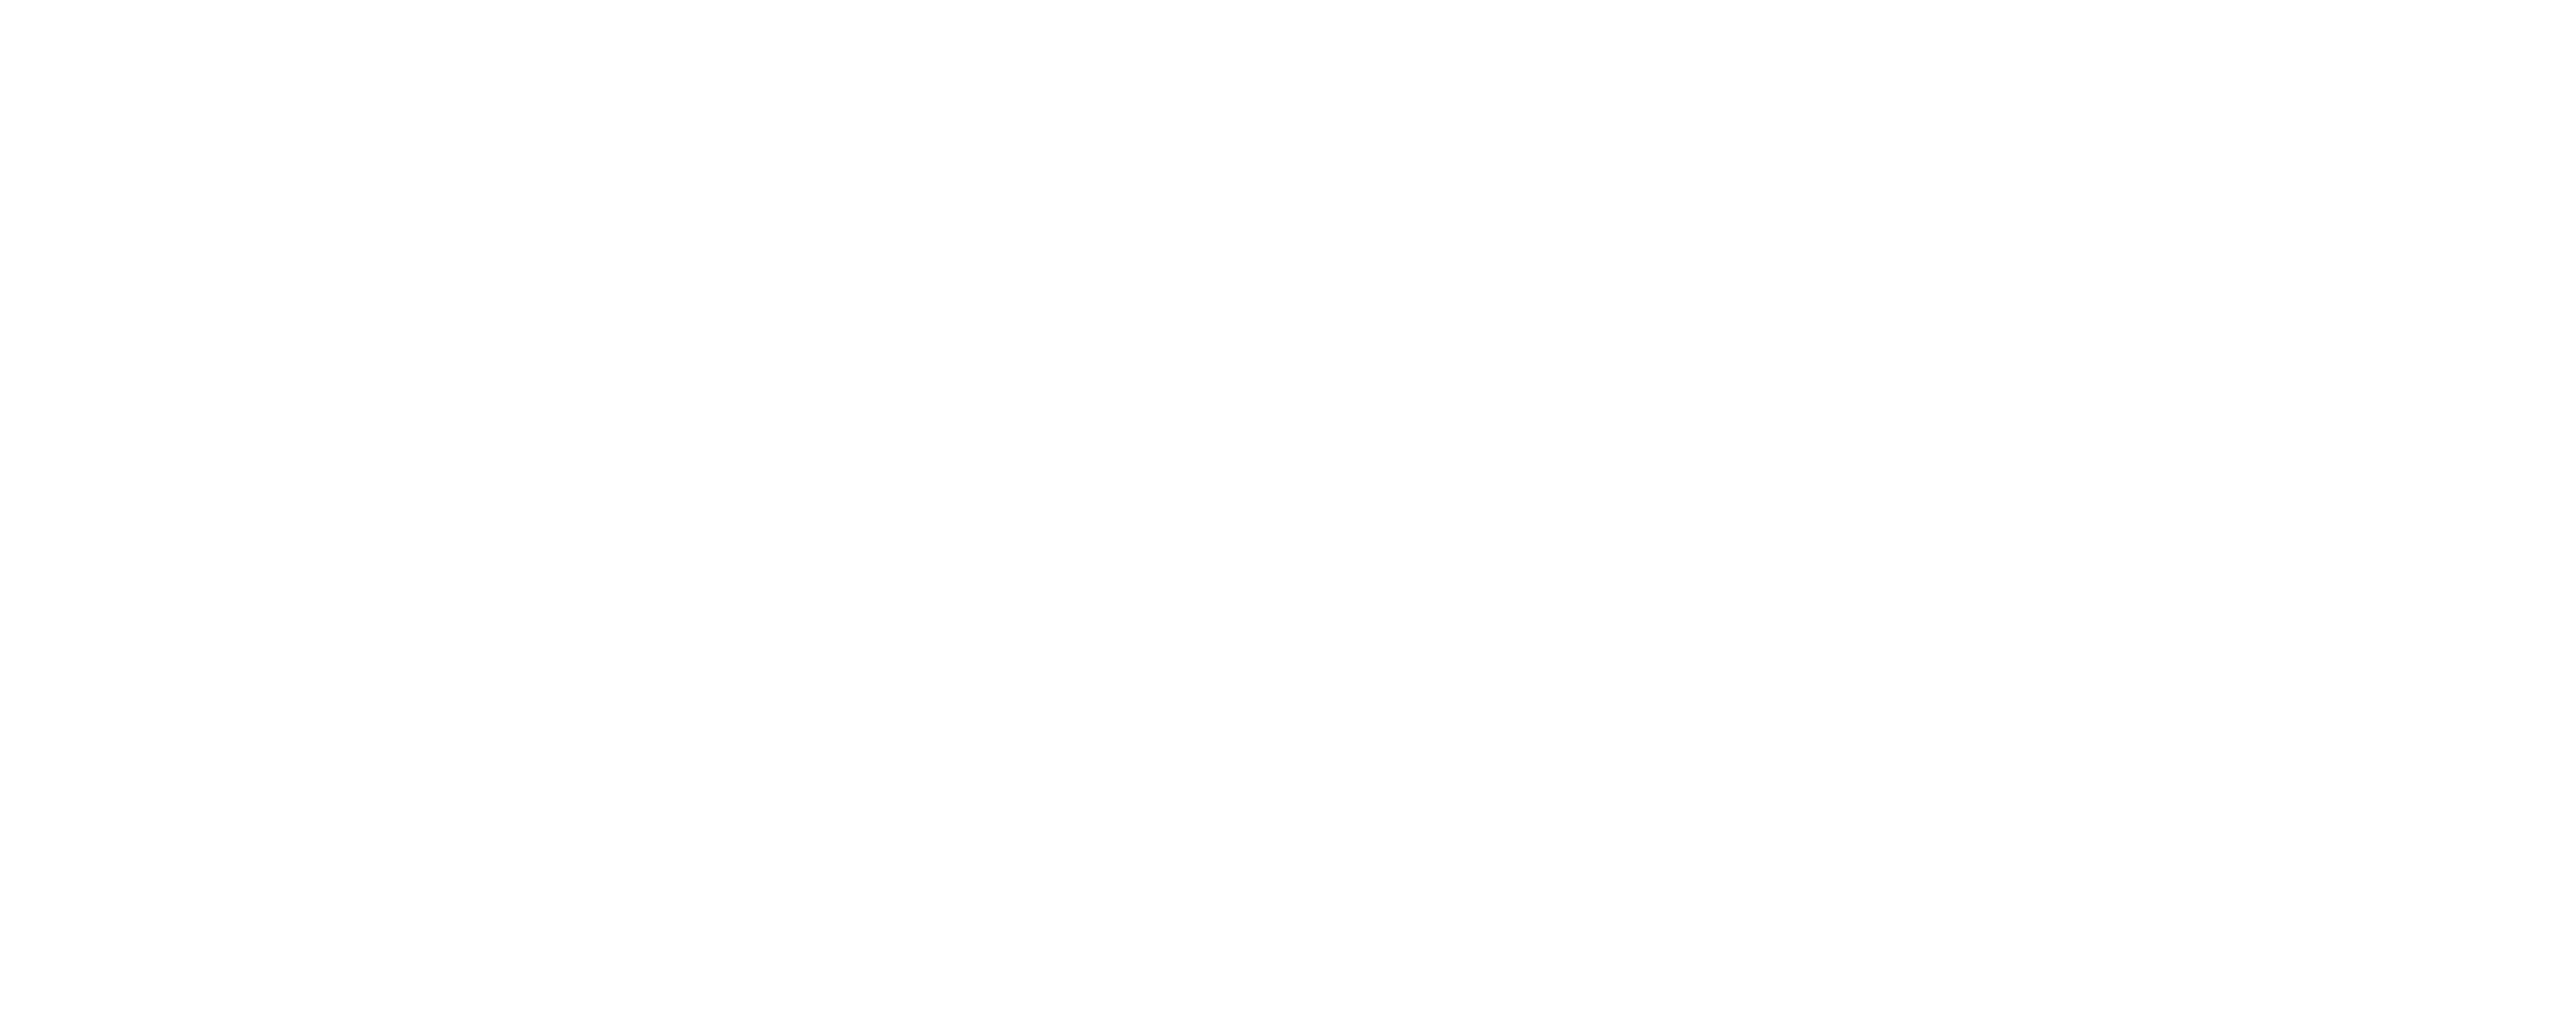 Our Clients First: Derek Chin and Natalie Rome